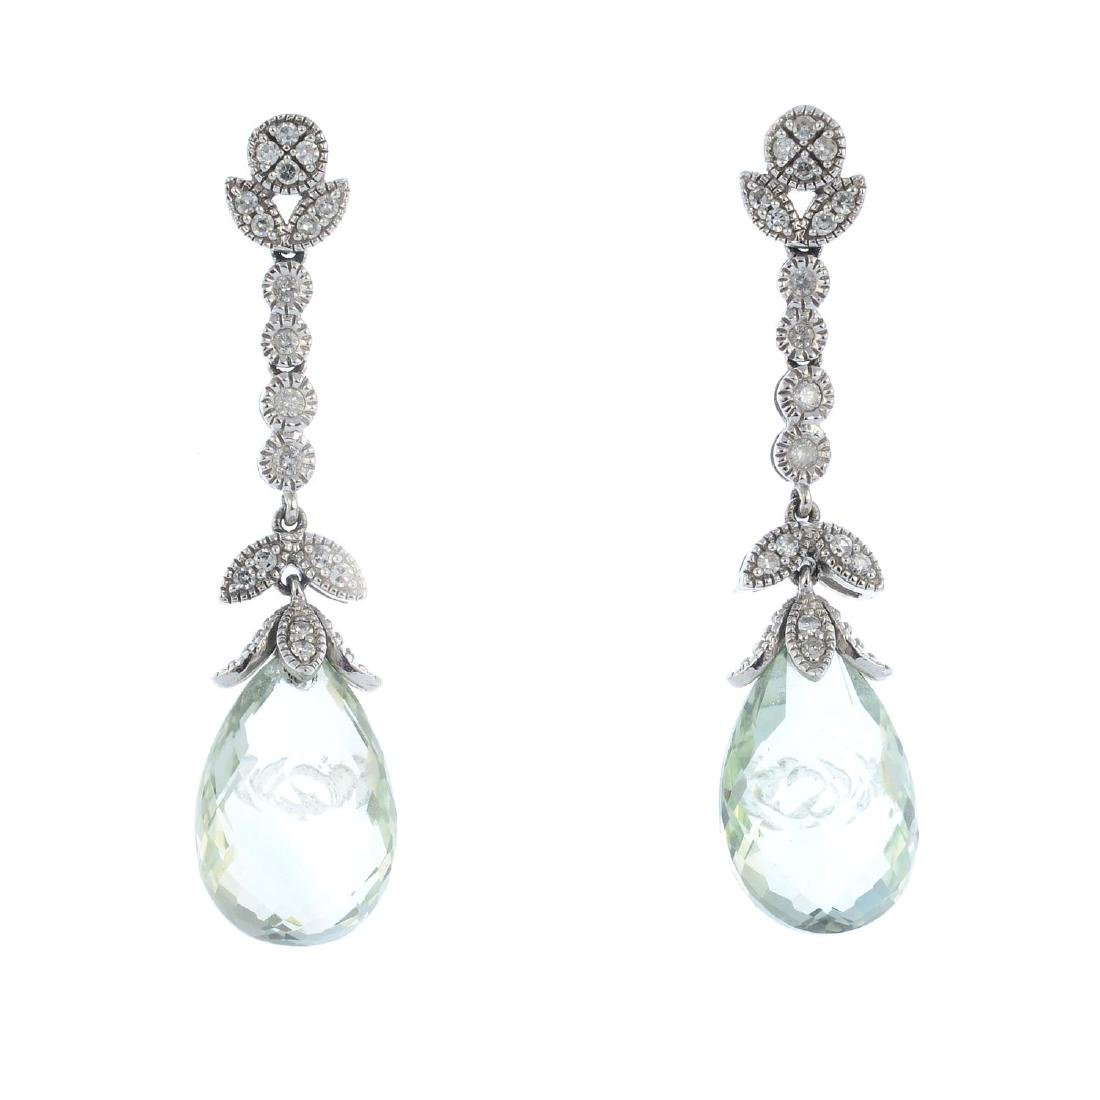 A pair of 9ct gold prasiolite and diamond earrings.